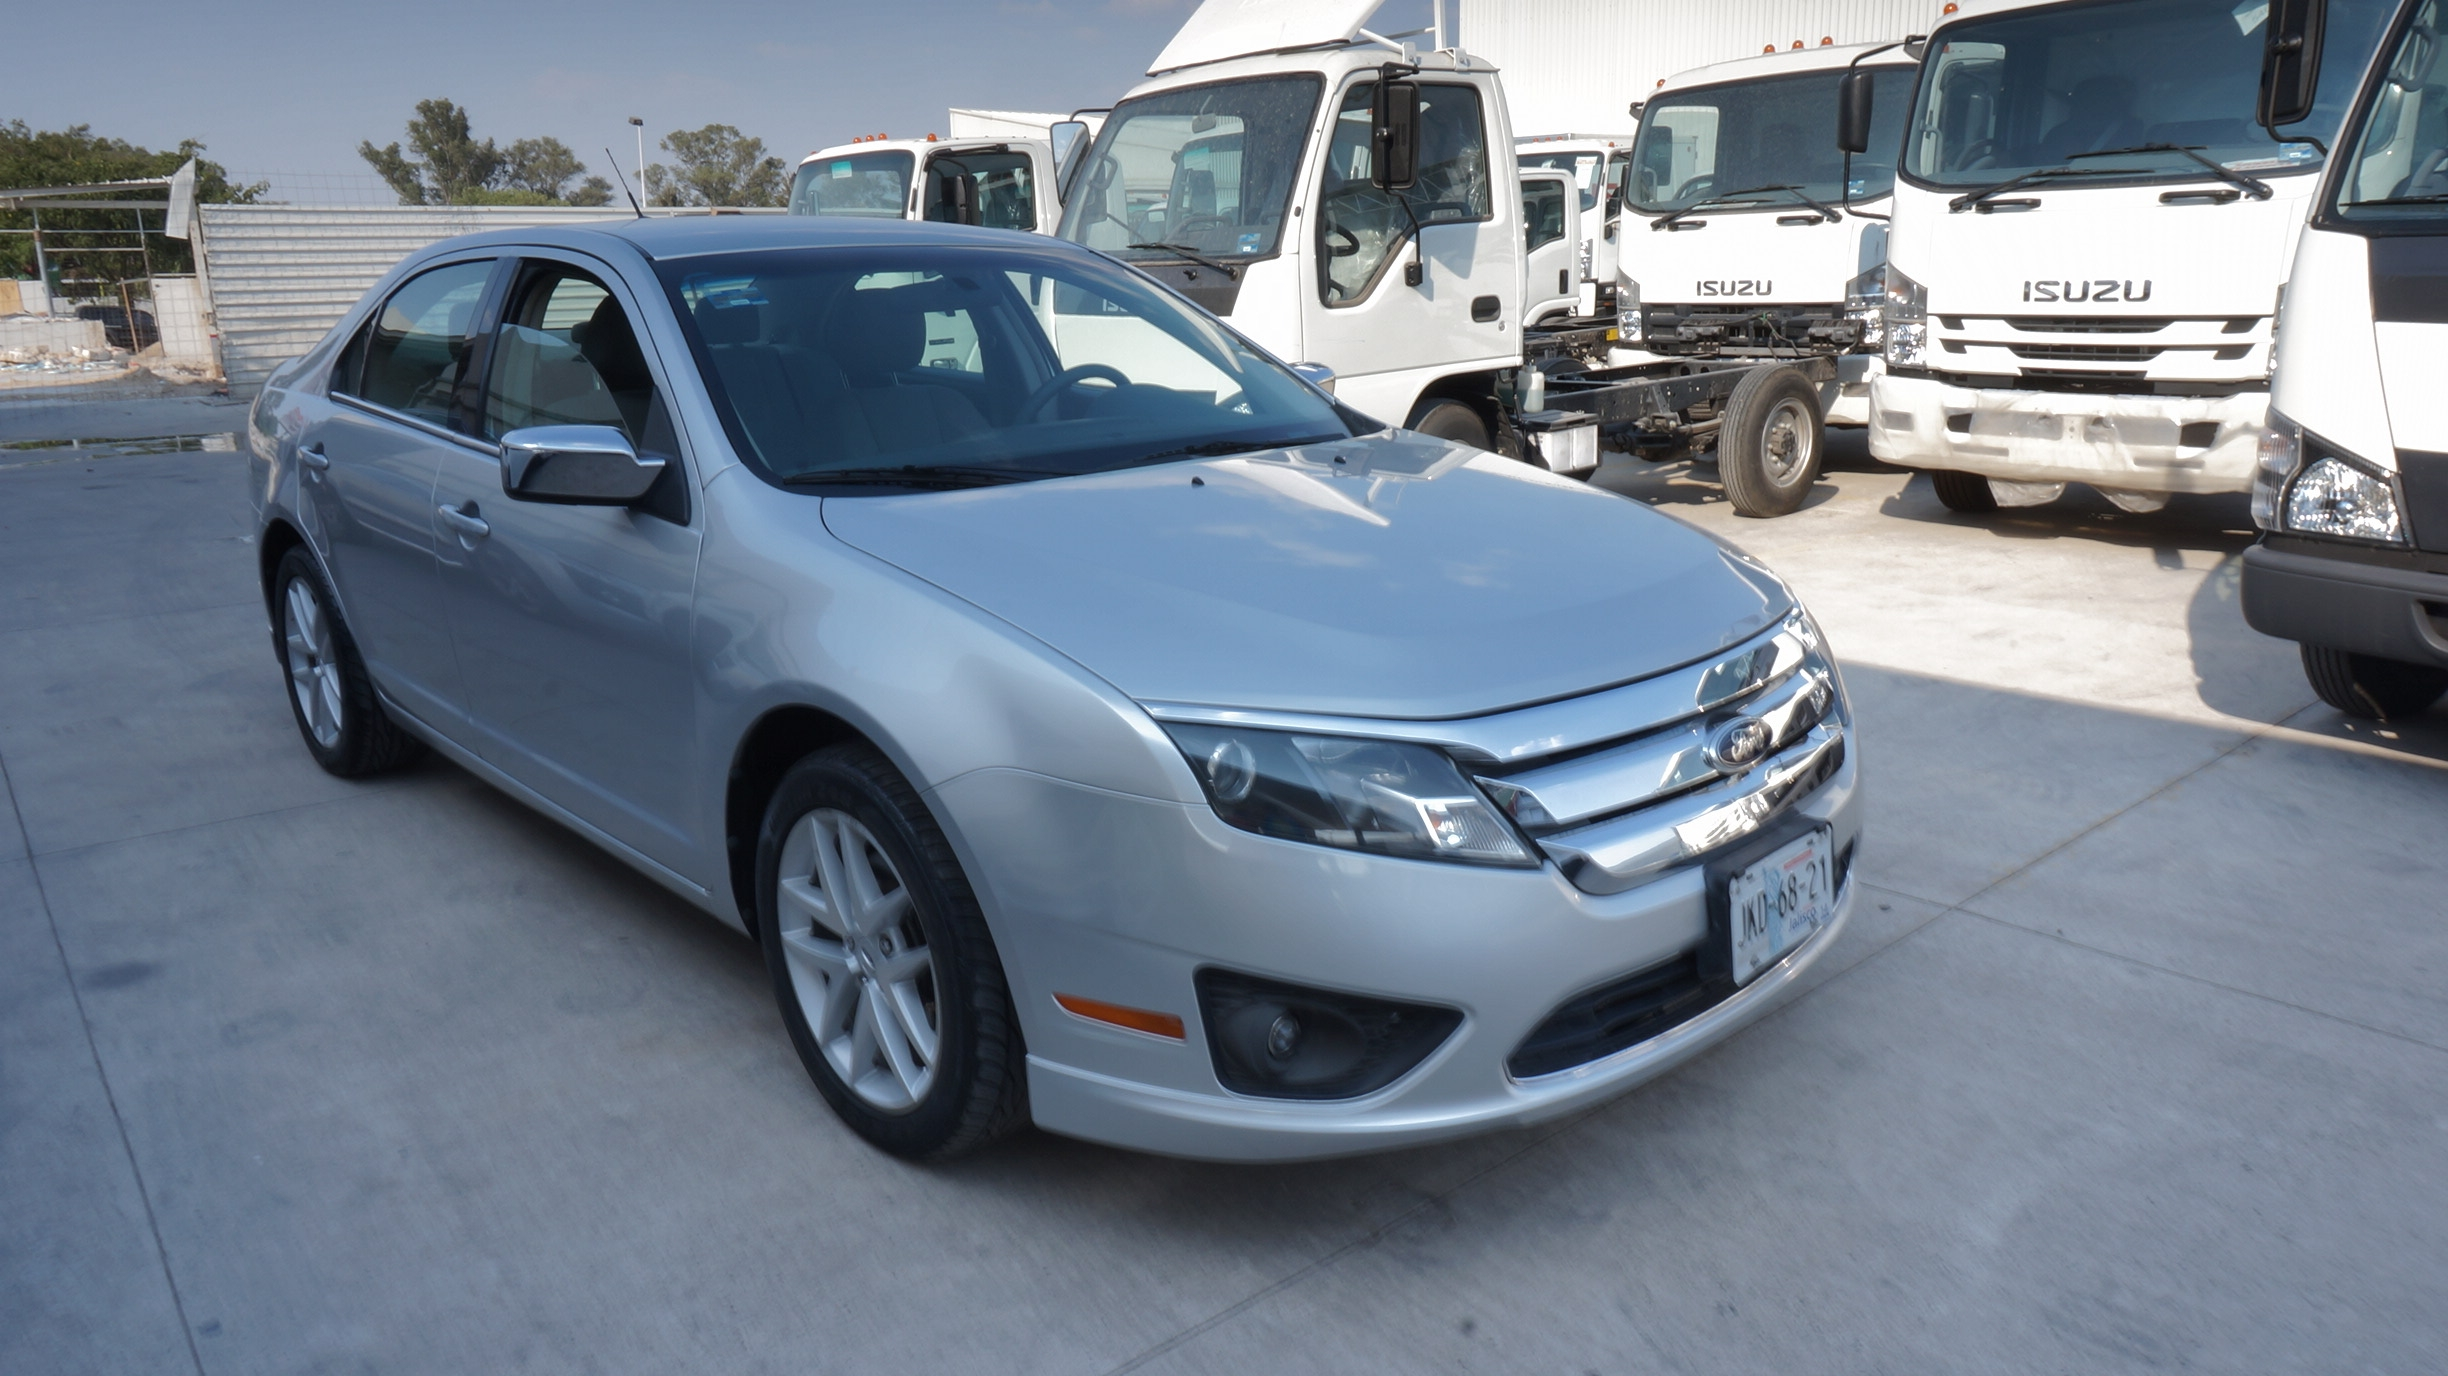 Ford Fusion 140,000